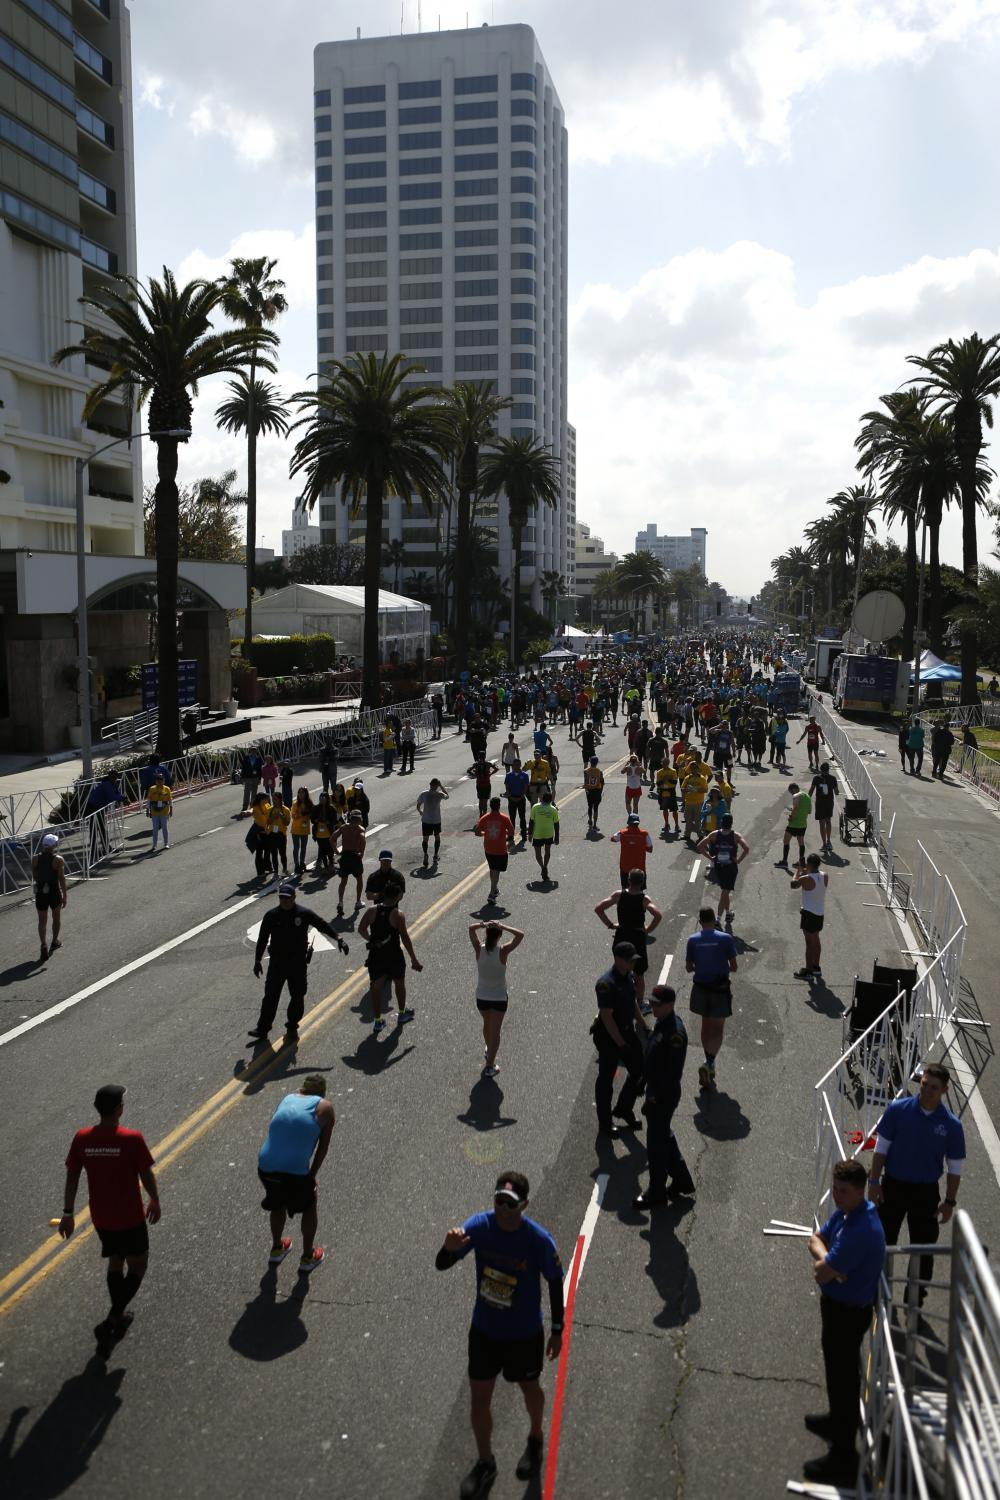 LOS ANGELES, CALIFORNIA - MARCH 24:  Runners walk after crossing the finish line of the 2019 Skechers Performance Los Angeles Marathon on March 24, 2019 in Los Angeles, California. (Photo by Katharine Lotze/Getty Images)